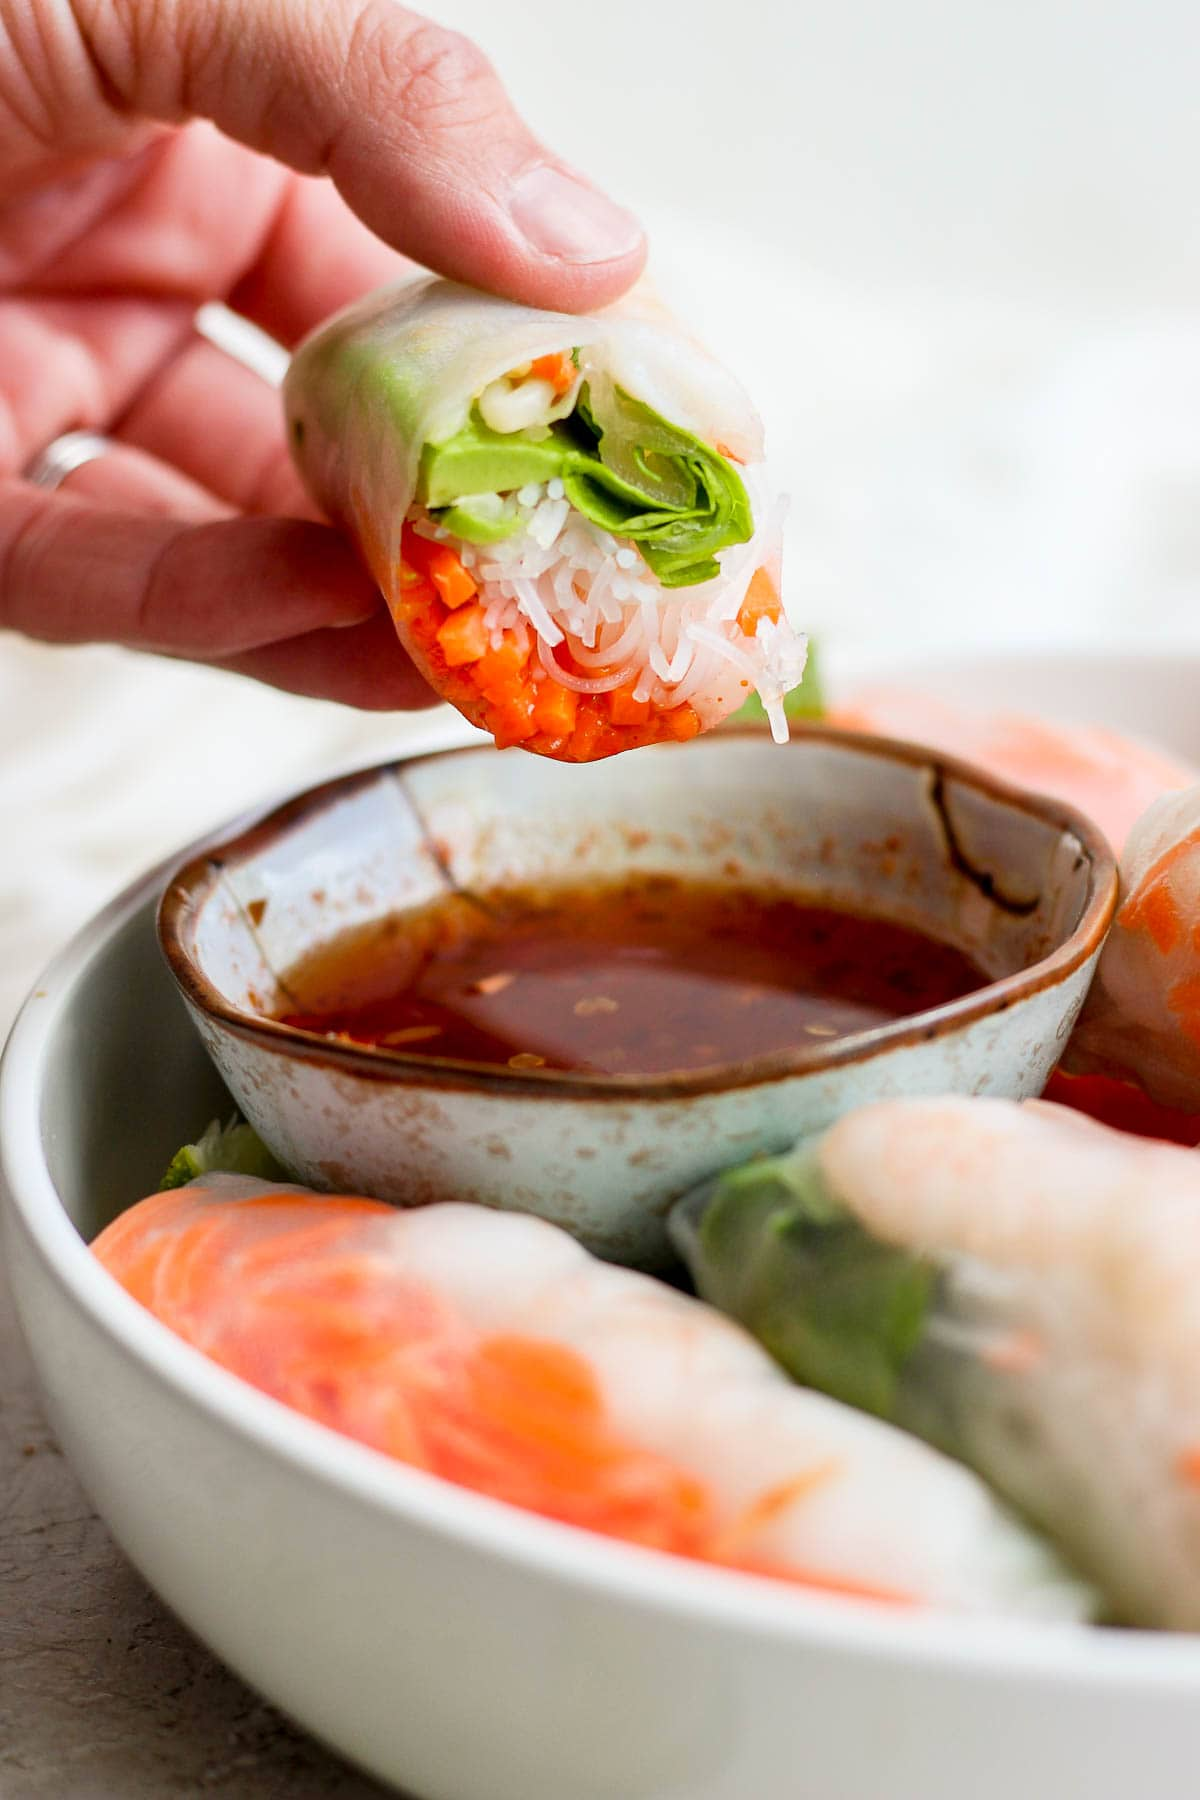 Someone dipping a shrimp spring roll into dipping sauce.